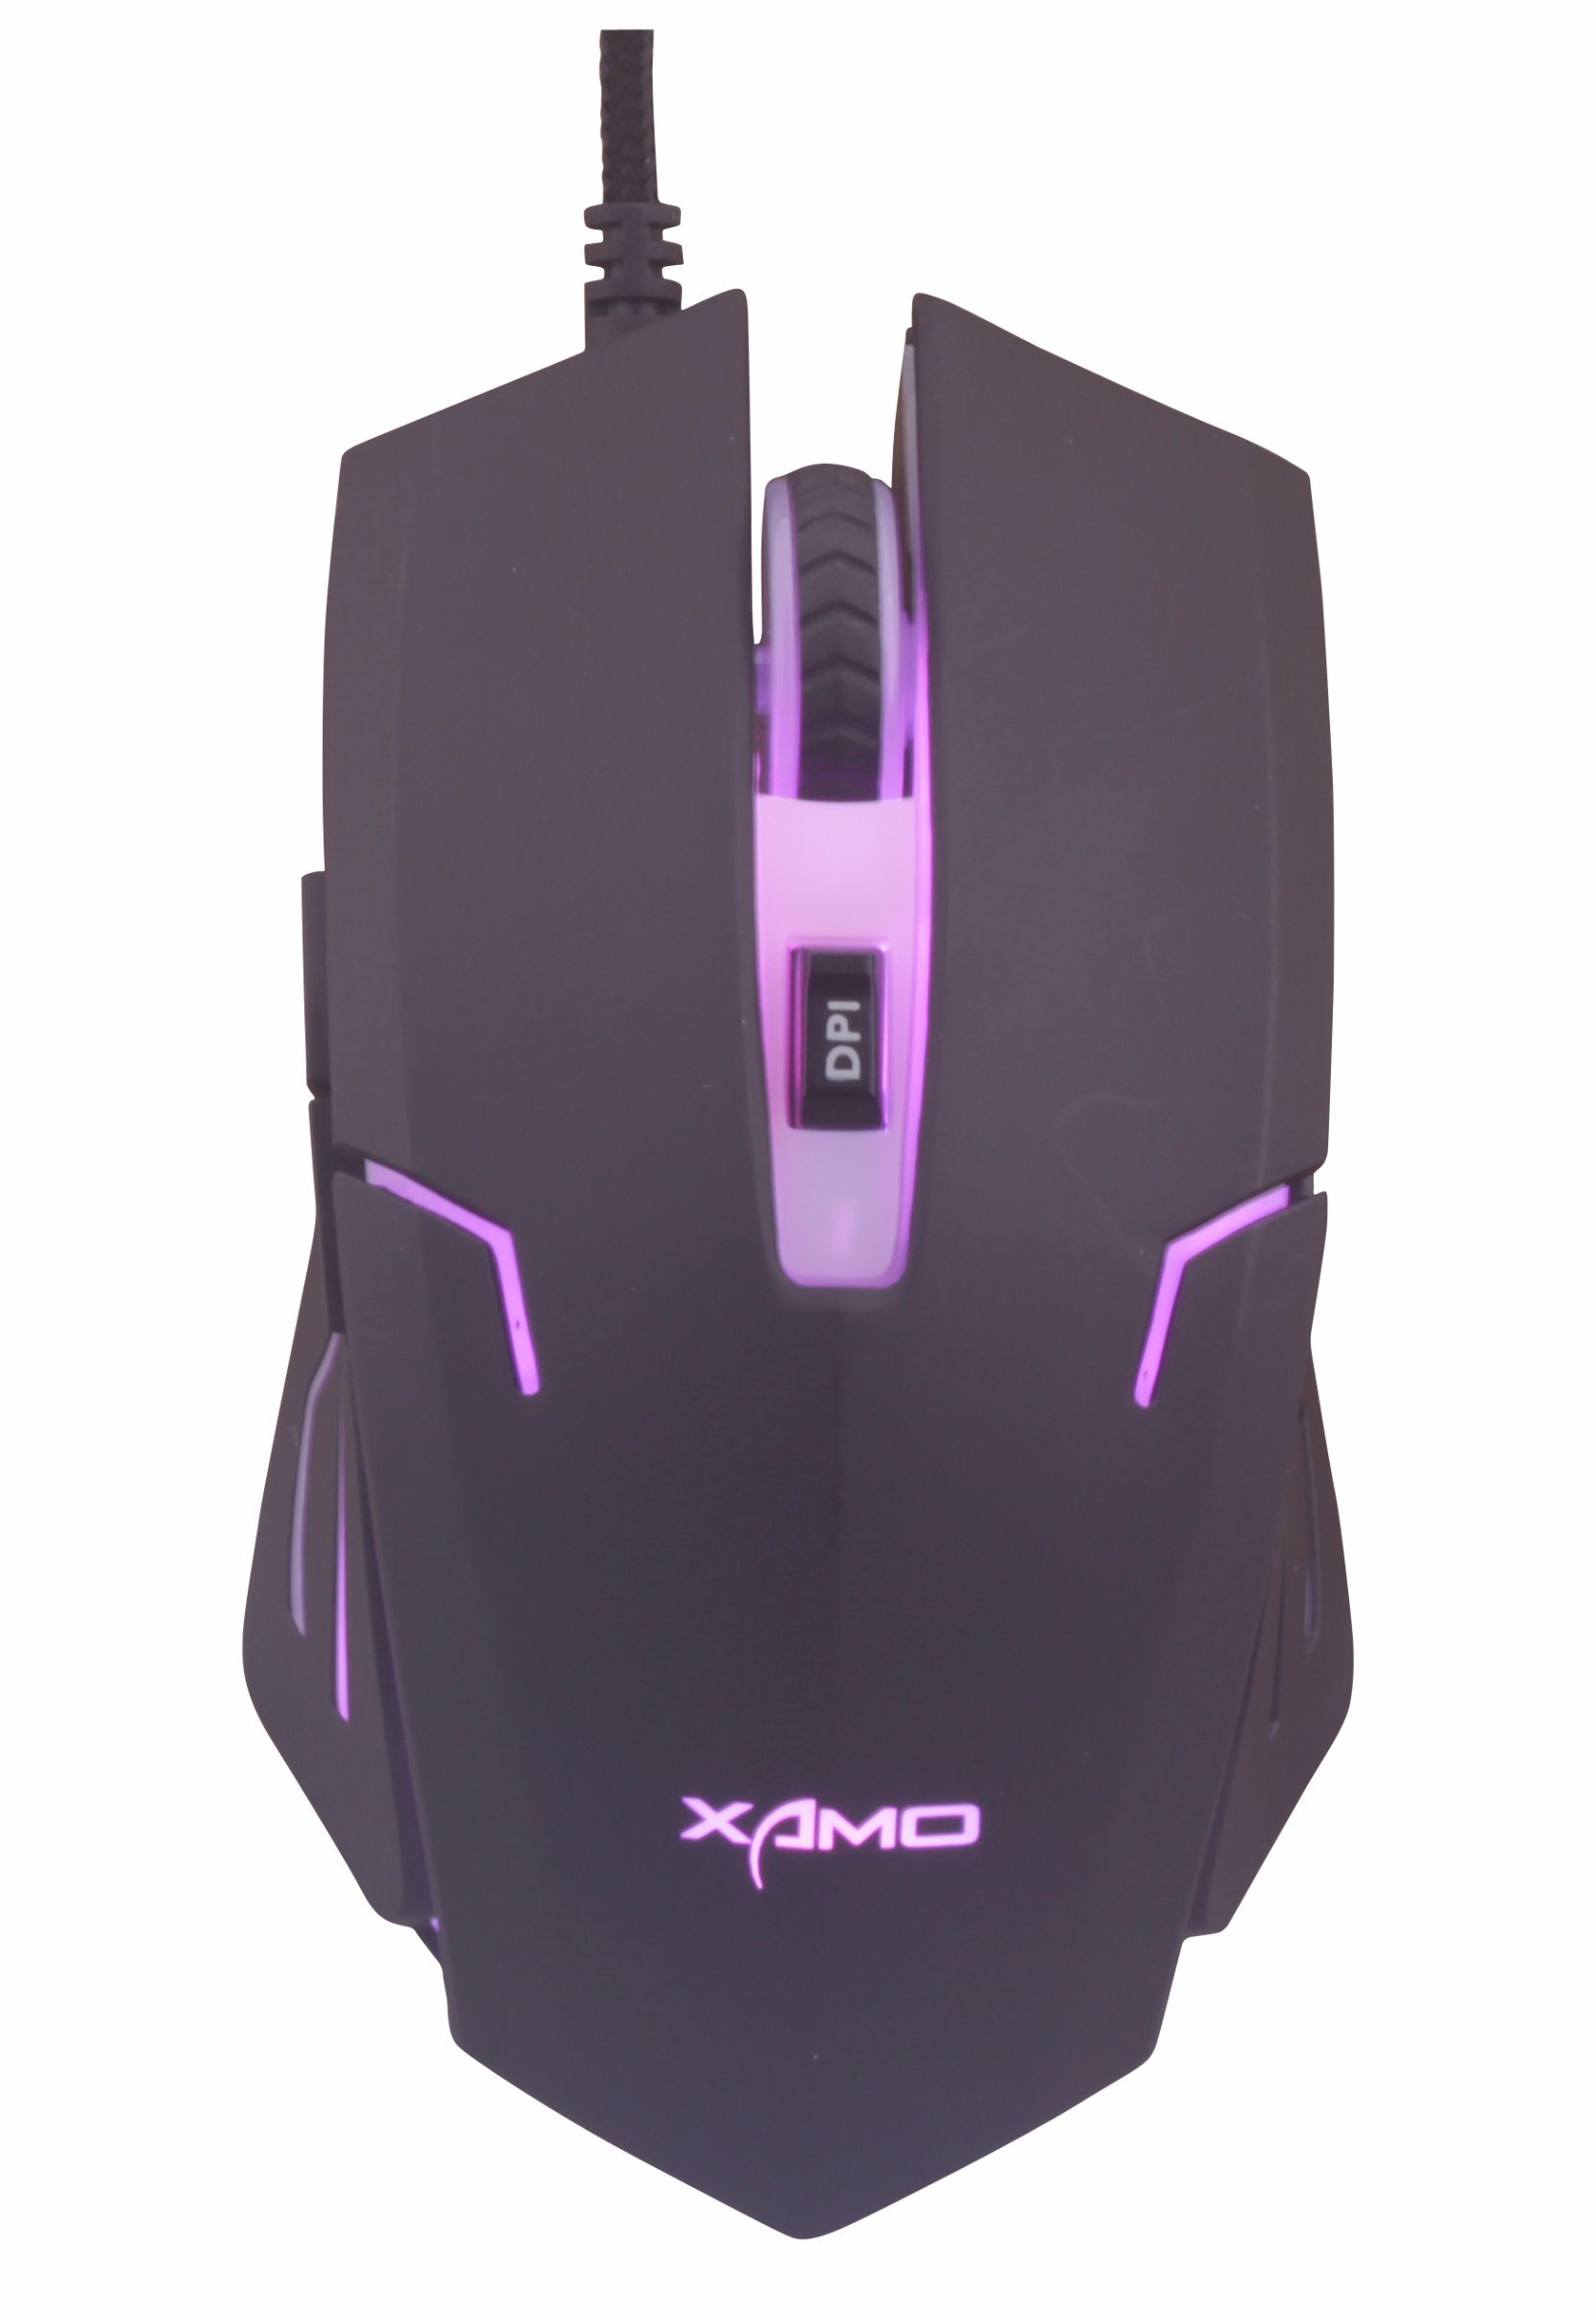 USB Gaming Mouse 3200dpi with Avago 5050 Chipset pictures & photos